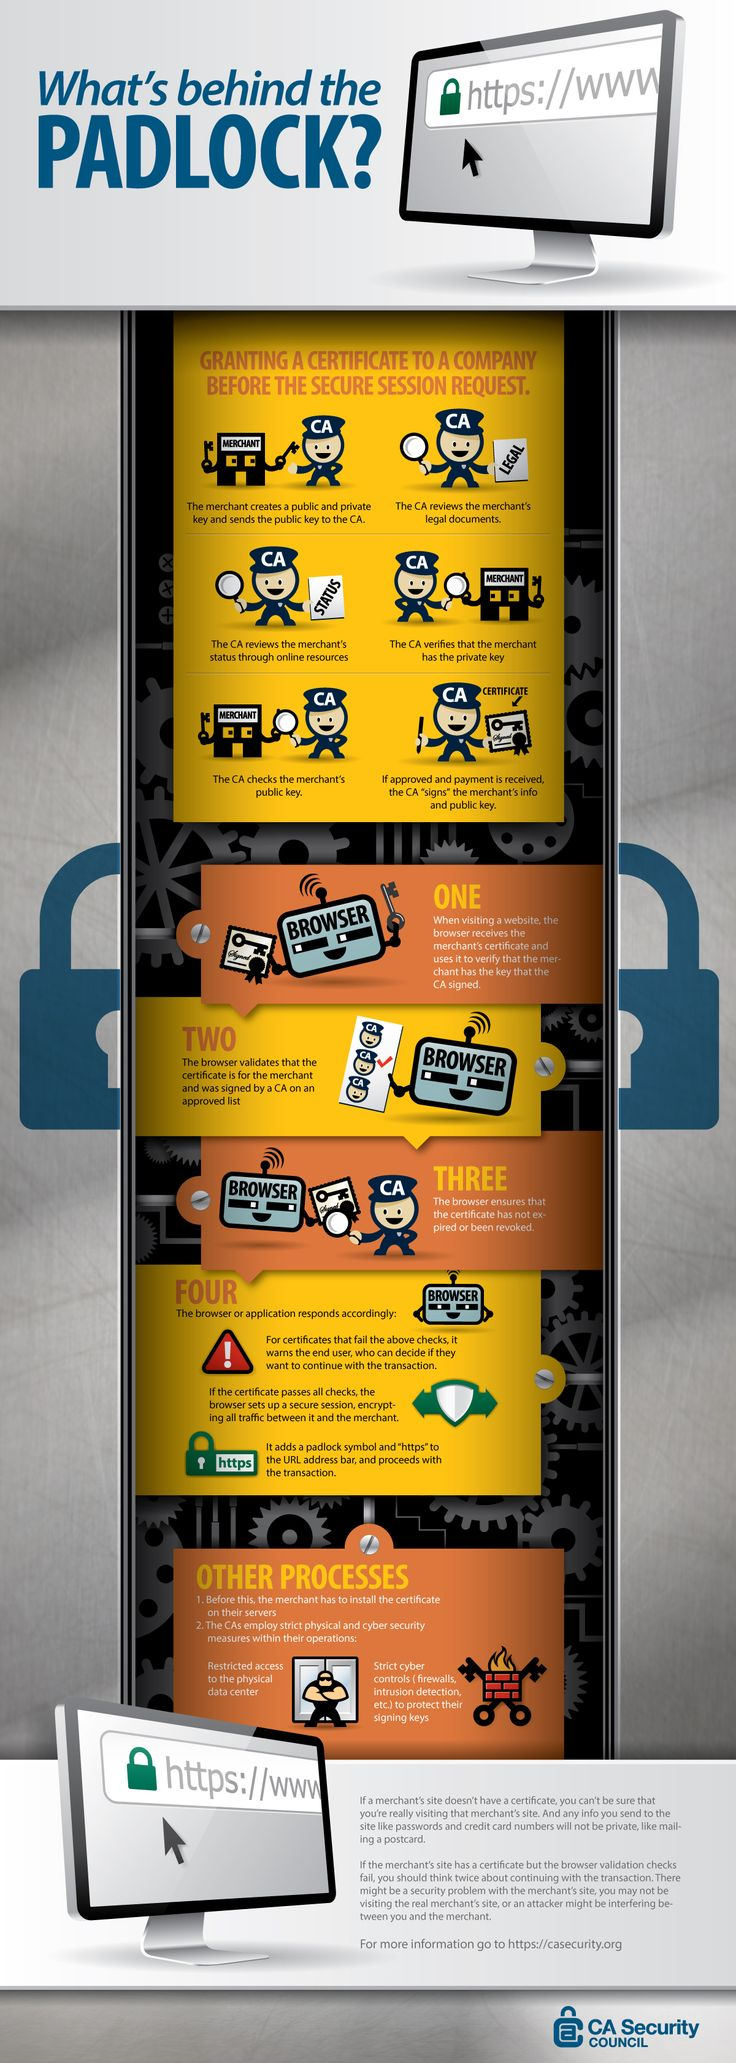 Know whats behind the padlock when install an SSL certificate in your website...!